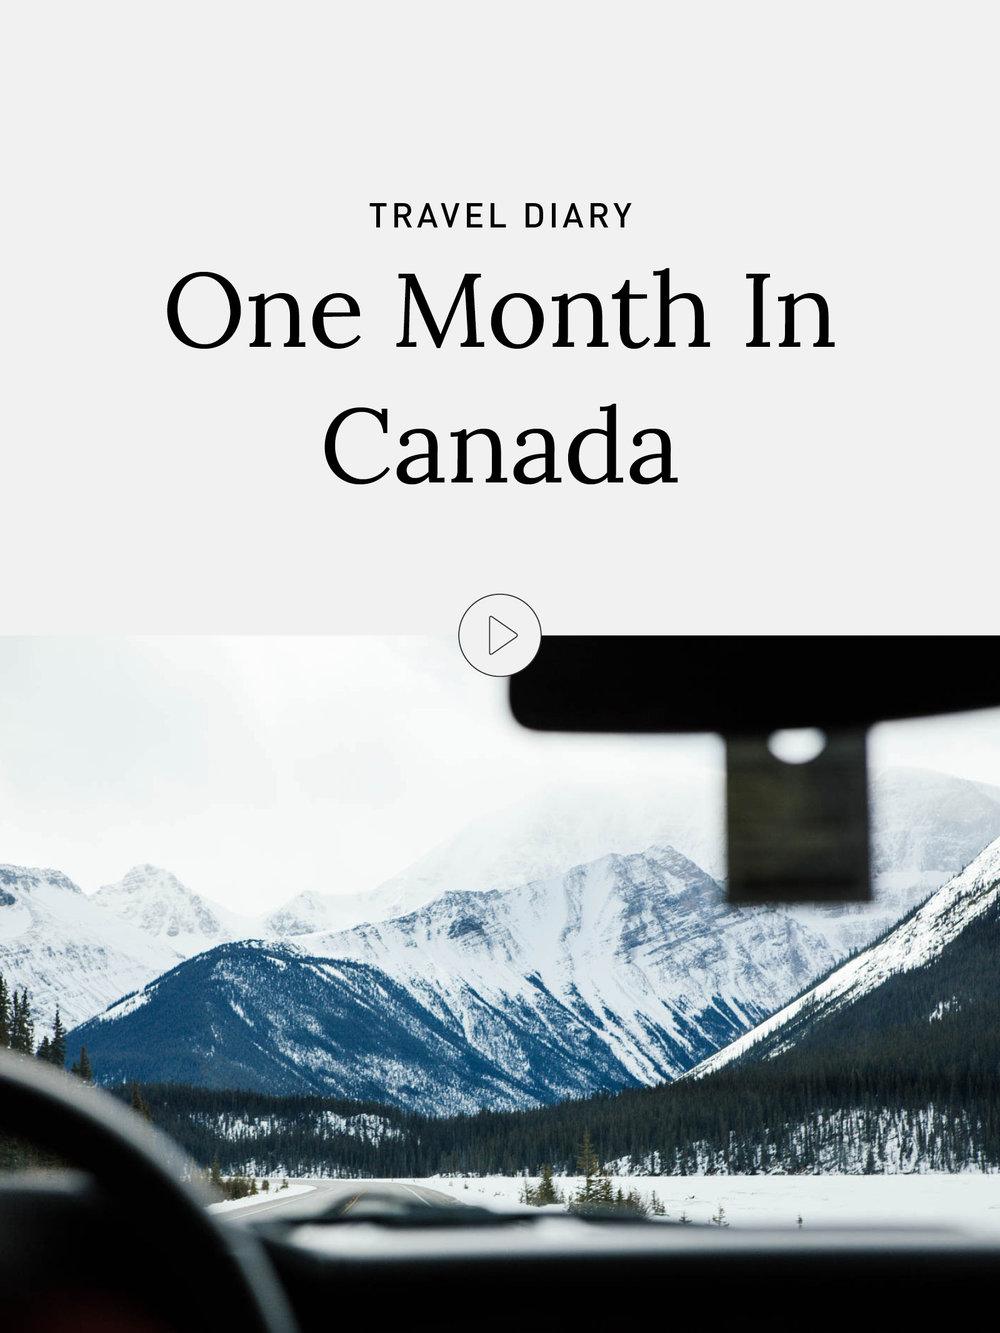 Video Diary: A Winter Roadtrip Around The Canadian Rockies | Canada, Travel, Mountains